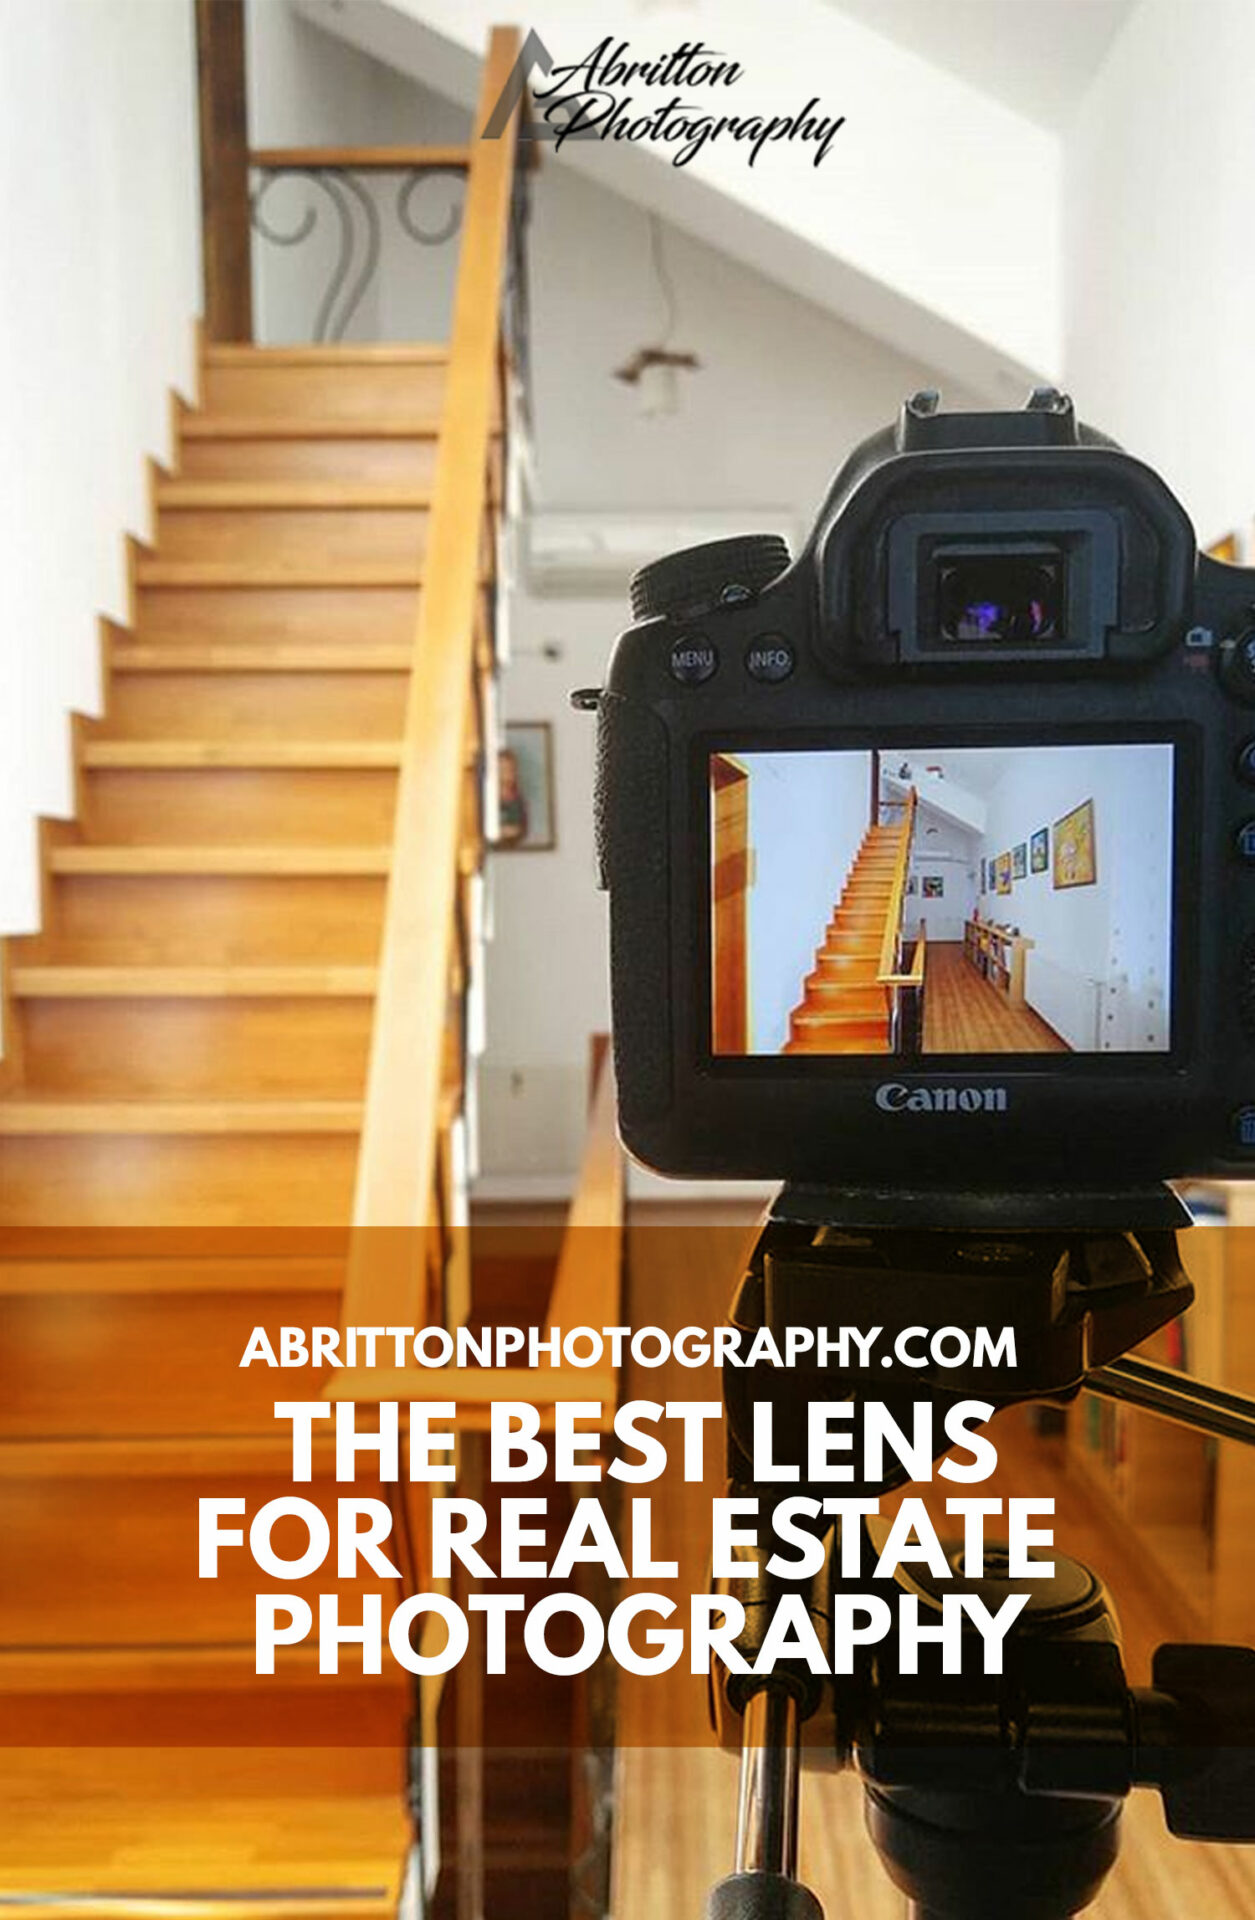 What Is the Best Lens for Real Estate Photography?